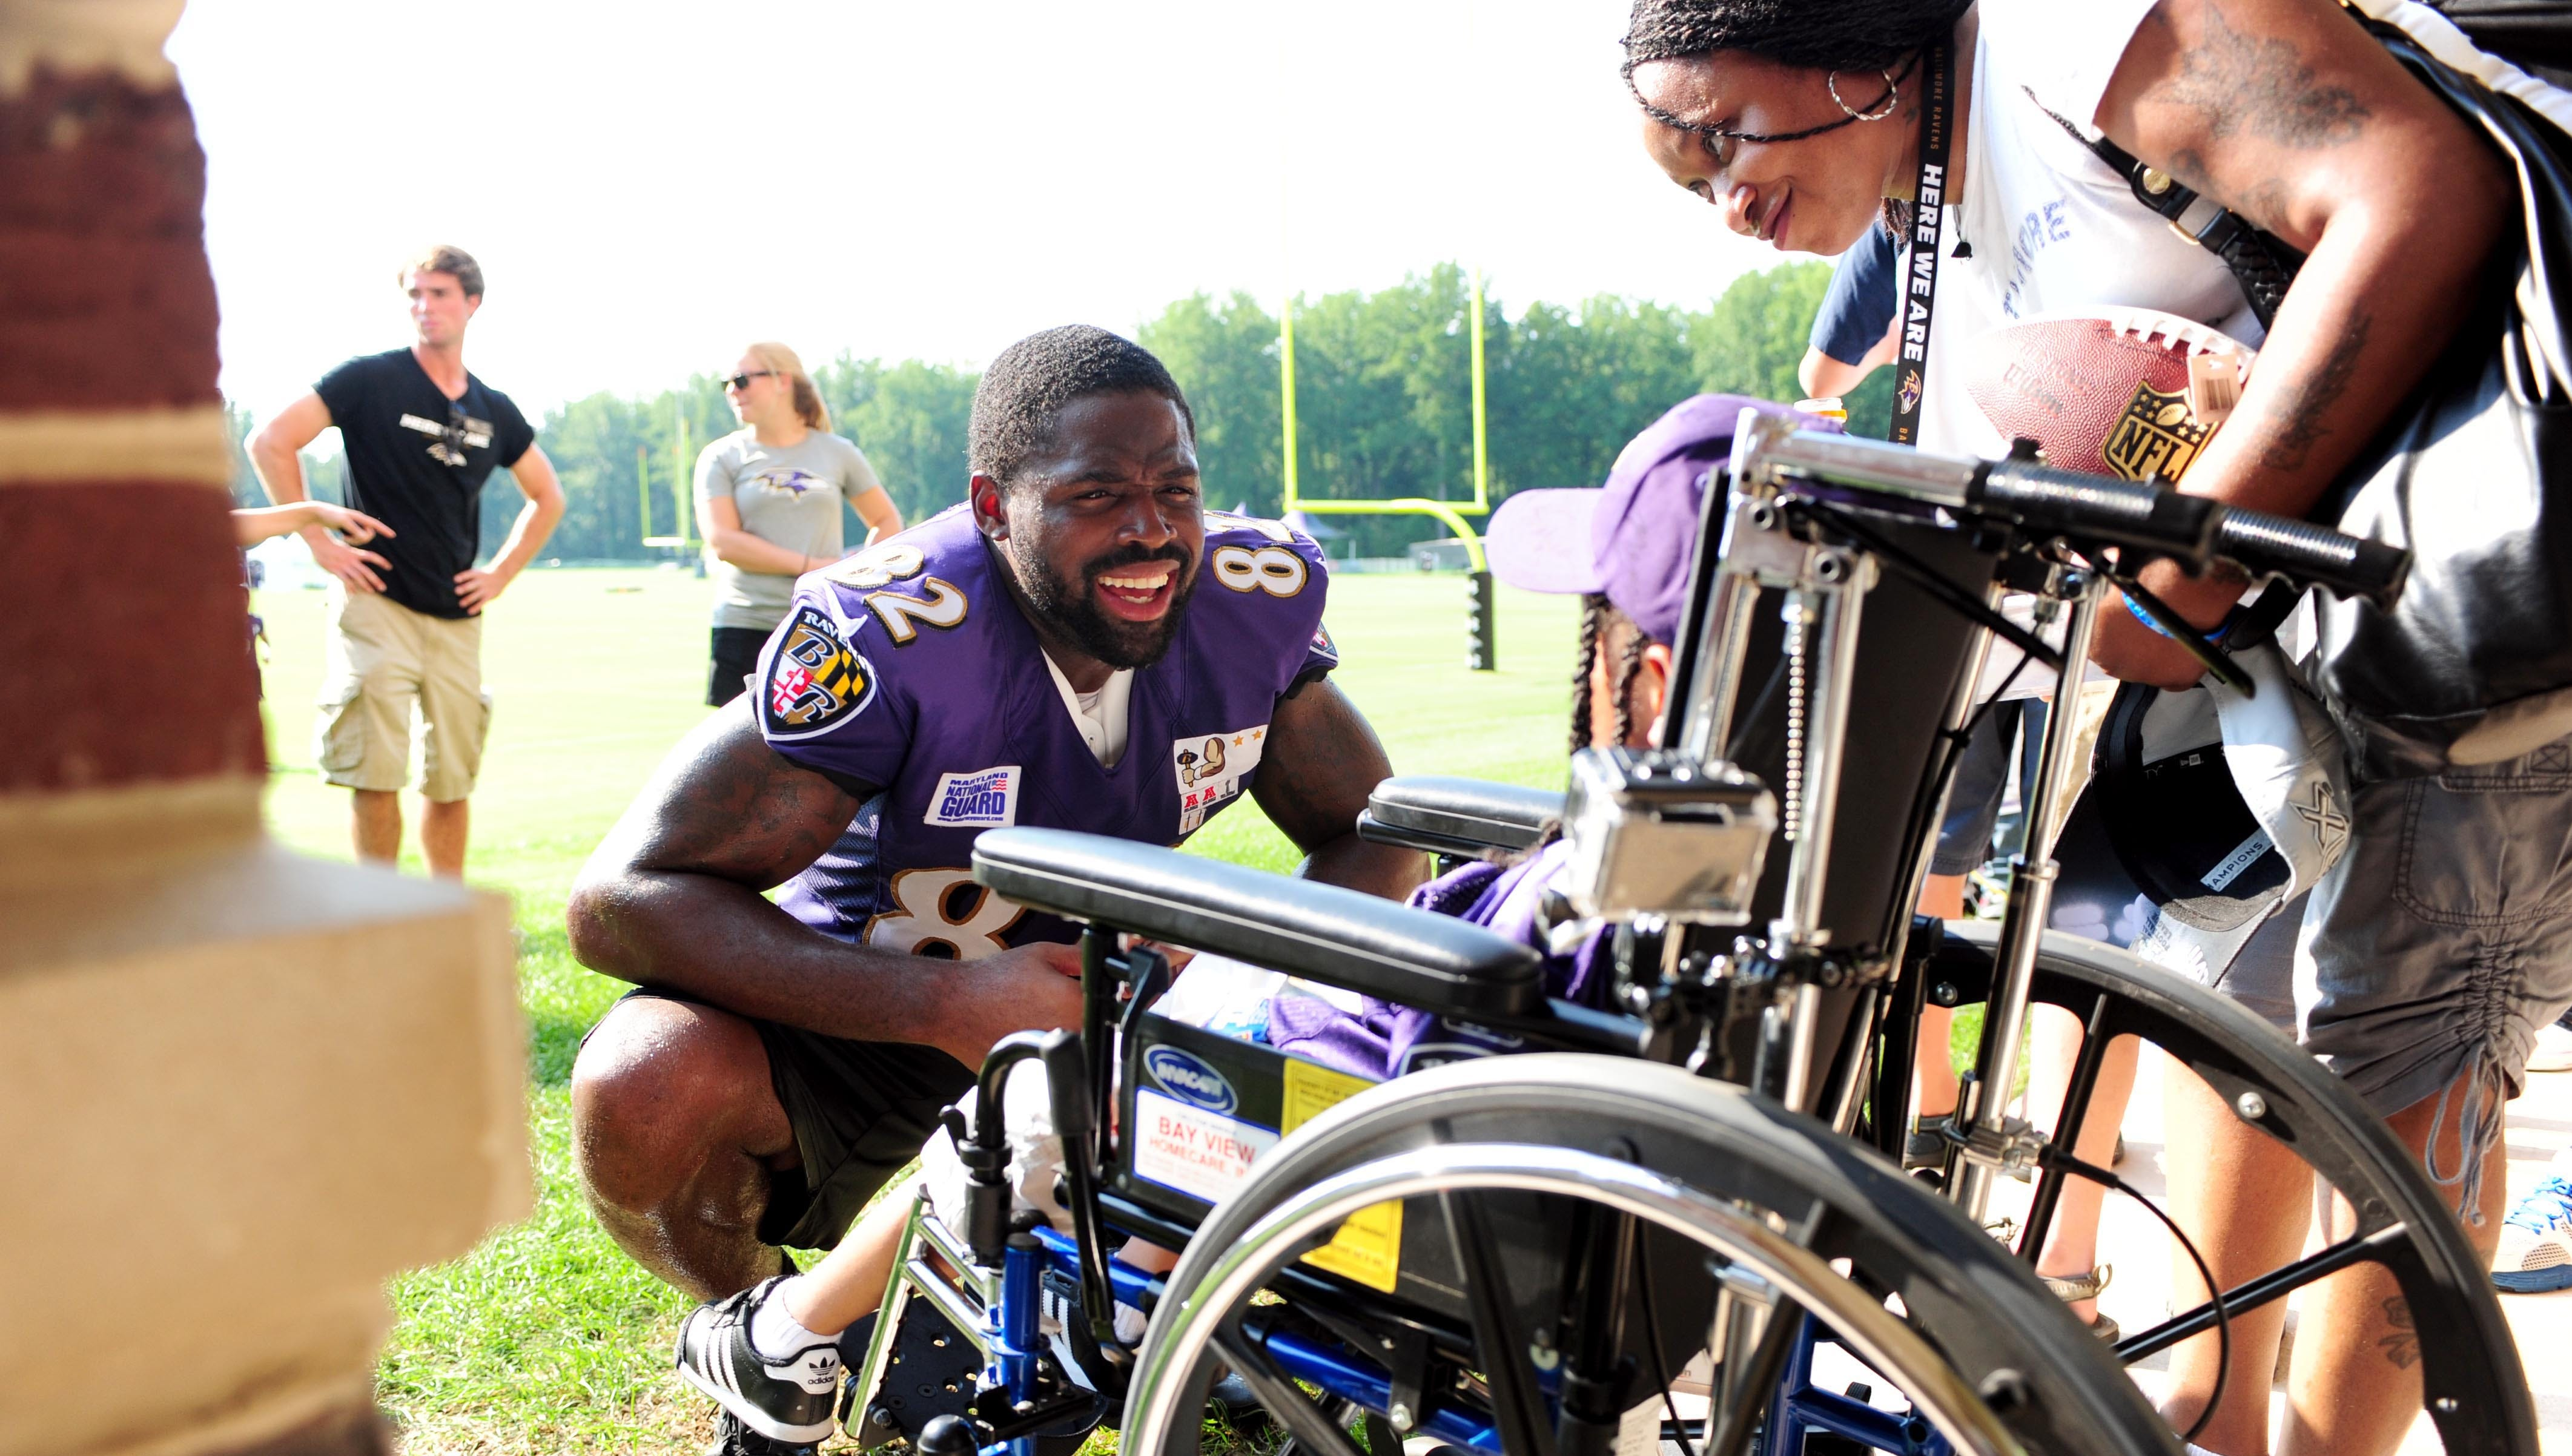 Baltimore Ravens wide receiver Torrey Smith signs autographs for a fan after training camp at the Under Armour Performance Center on Aug. 12.